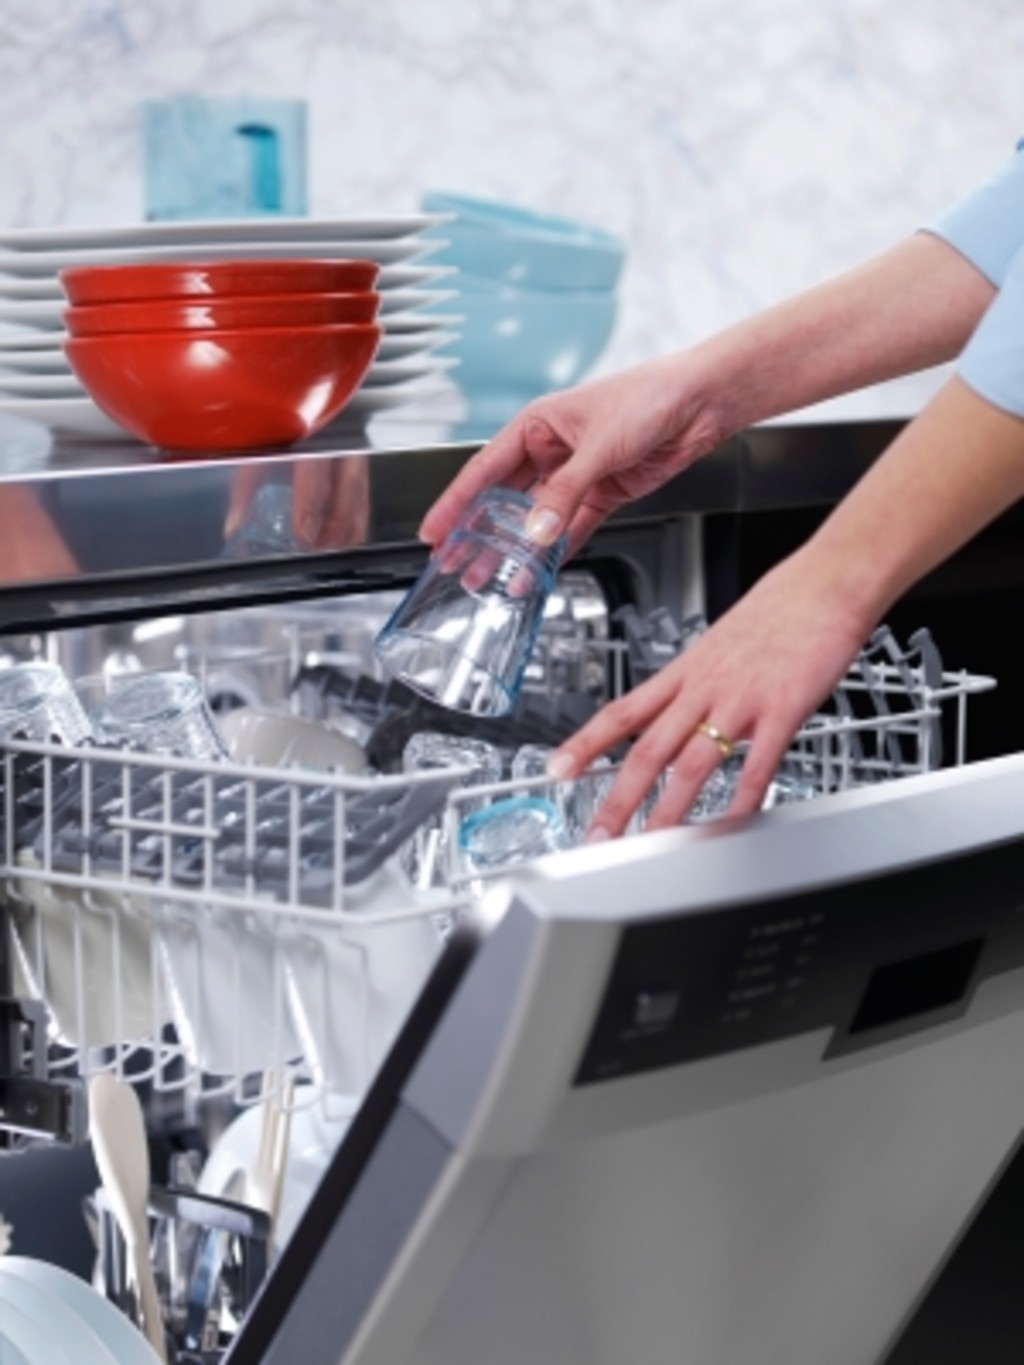 Uncategorized Kitchen Appliance Repairs dishwasher repair hackensack nj northeast appliance service dishwasher